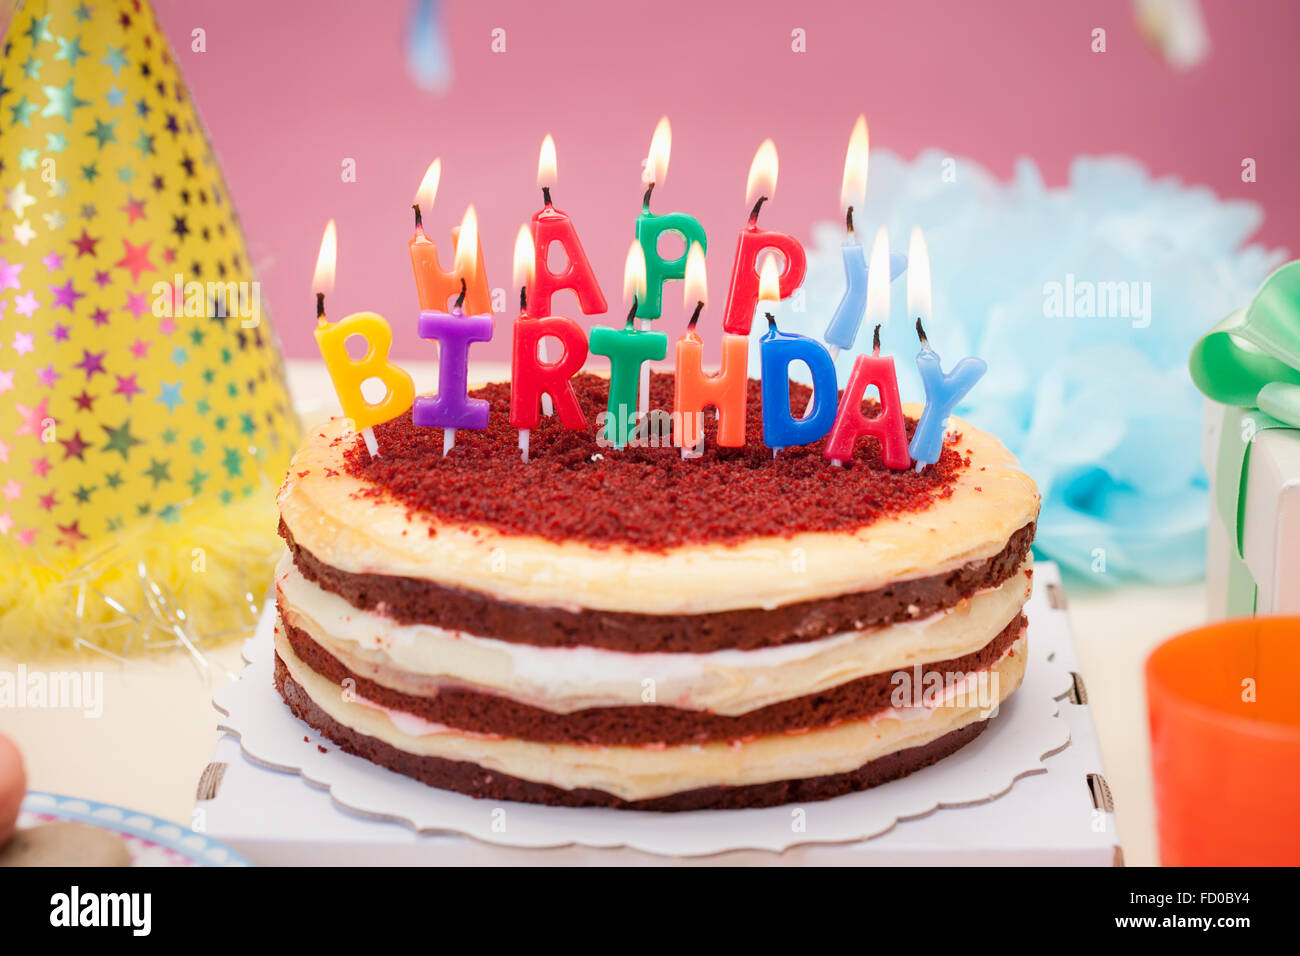 Birthday Cake Candle Images Free Download : Birthday cake with colorful candles representing Happy ...